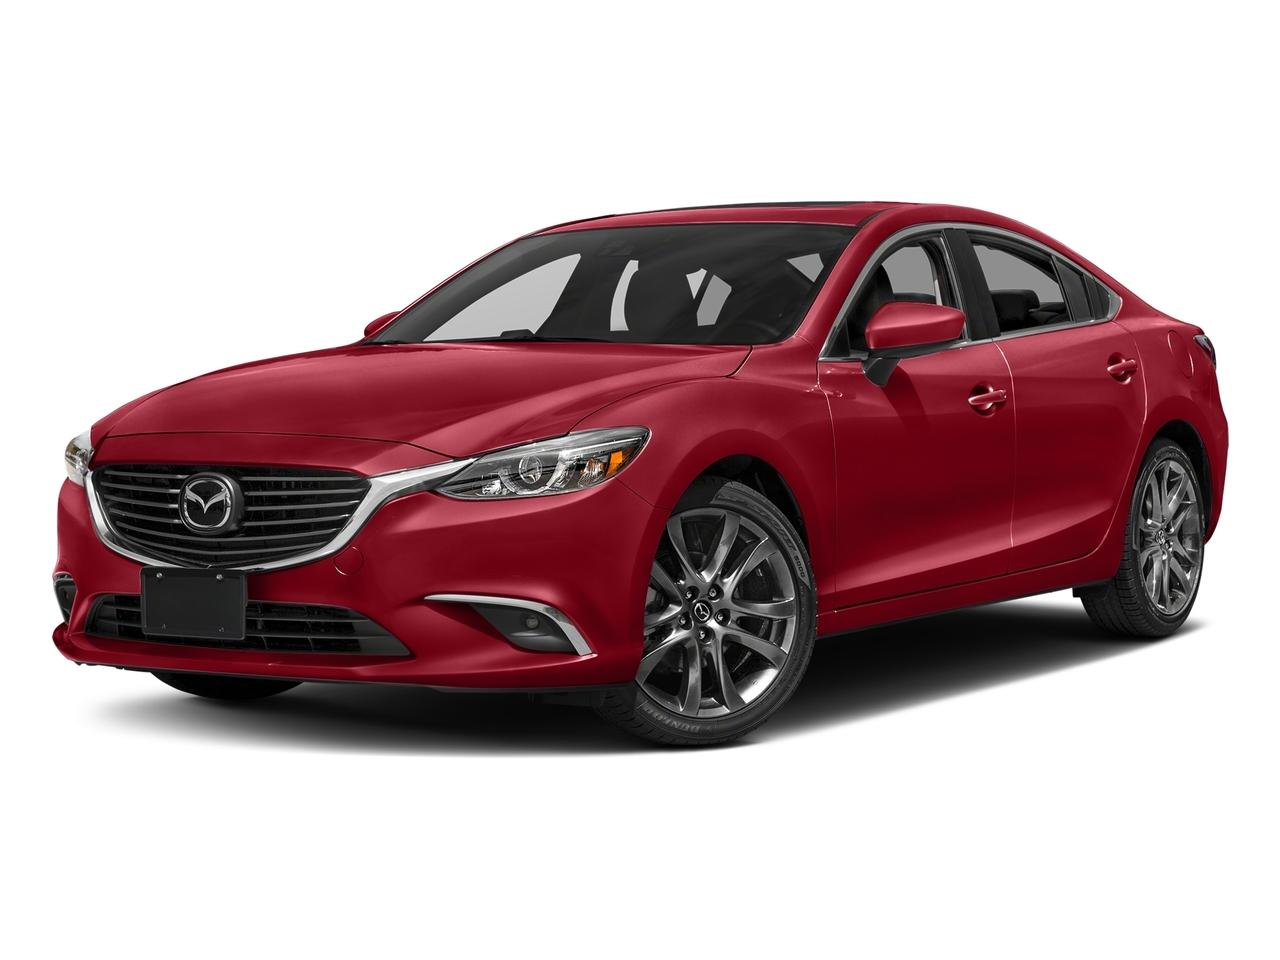 2016 Mazda Mazda6 Vehicle Photo in King George, VA 22485